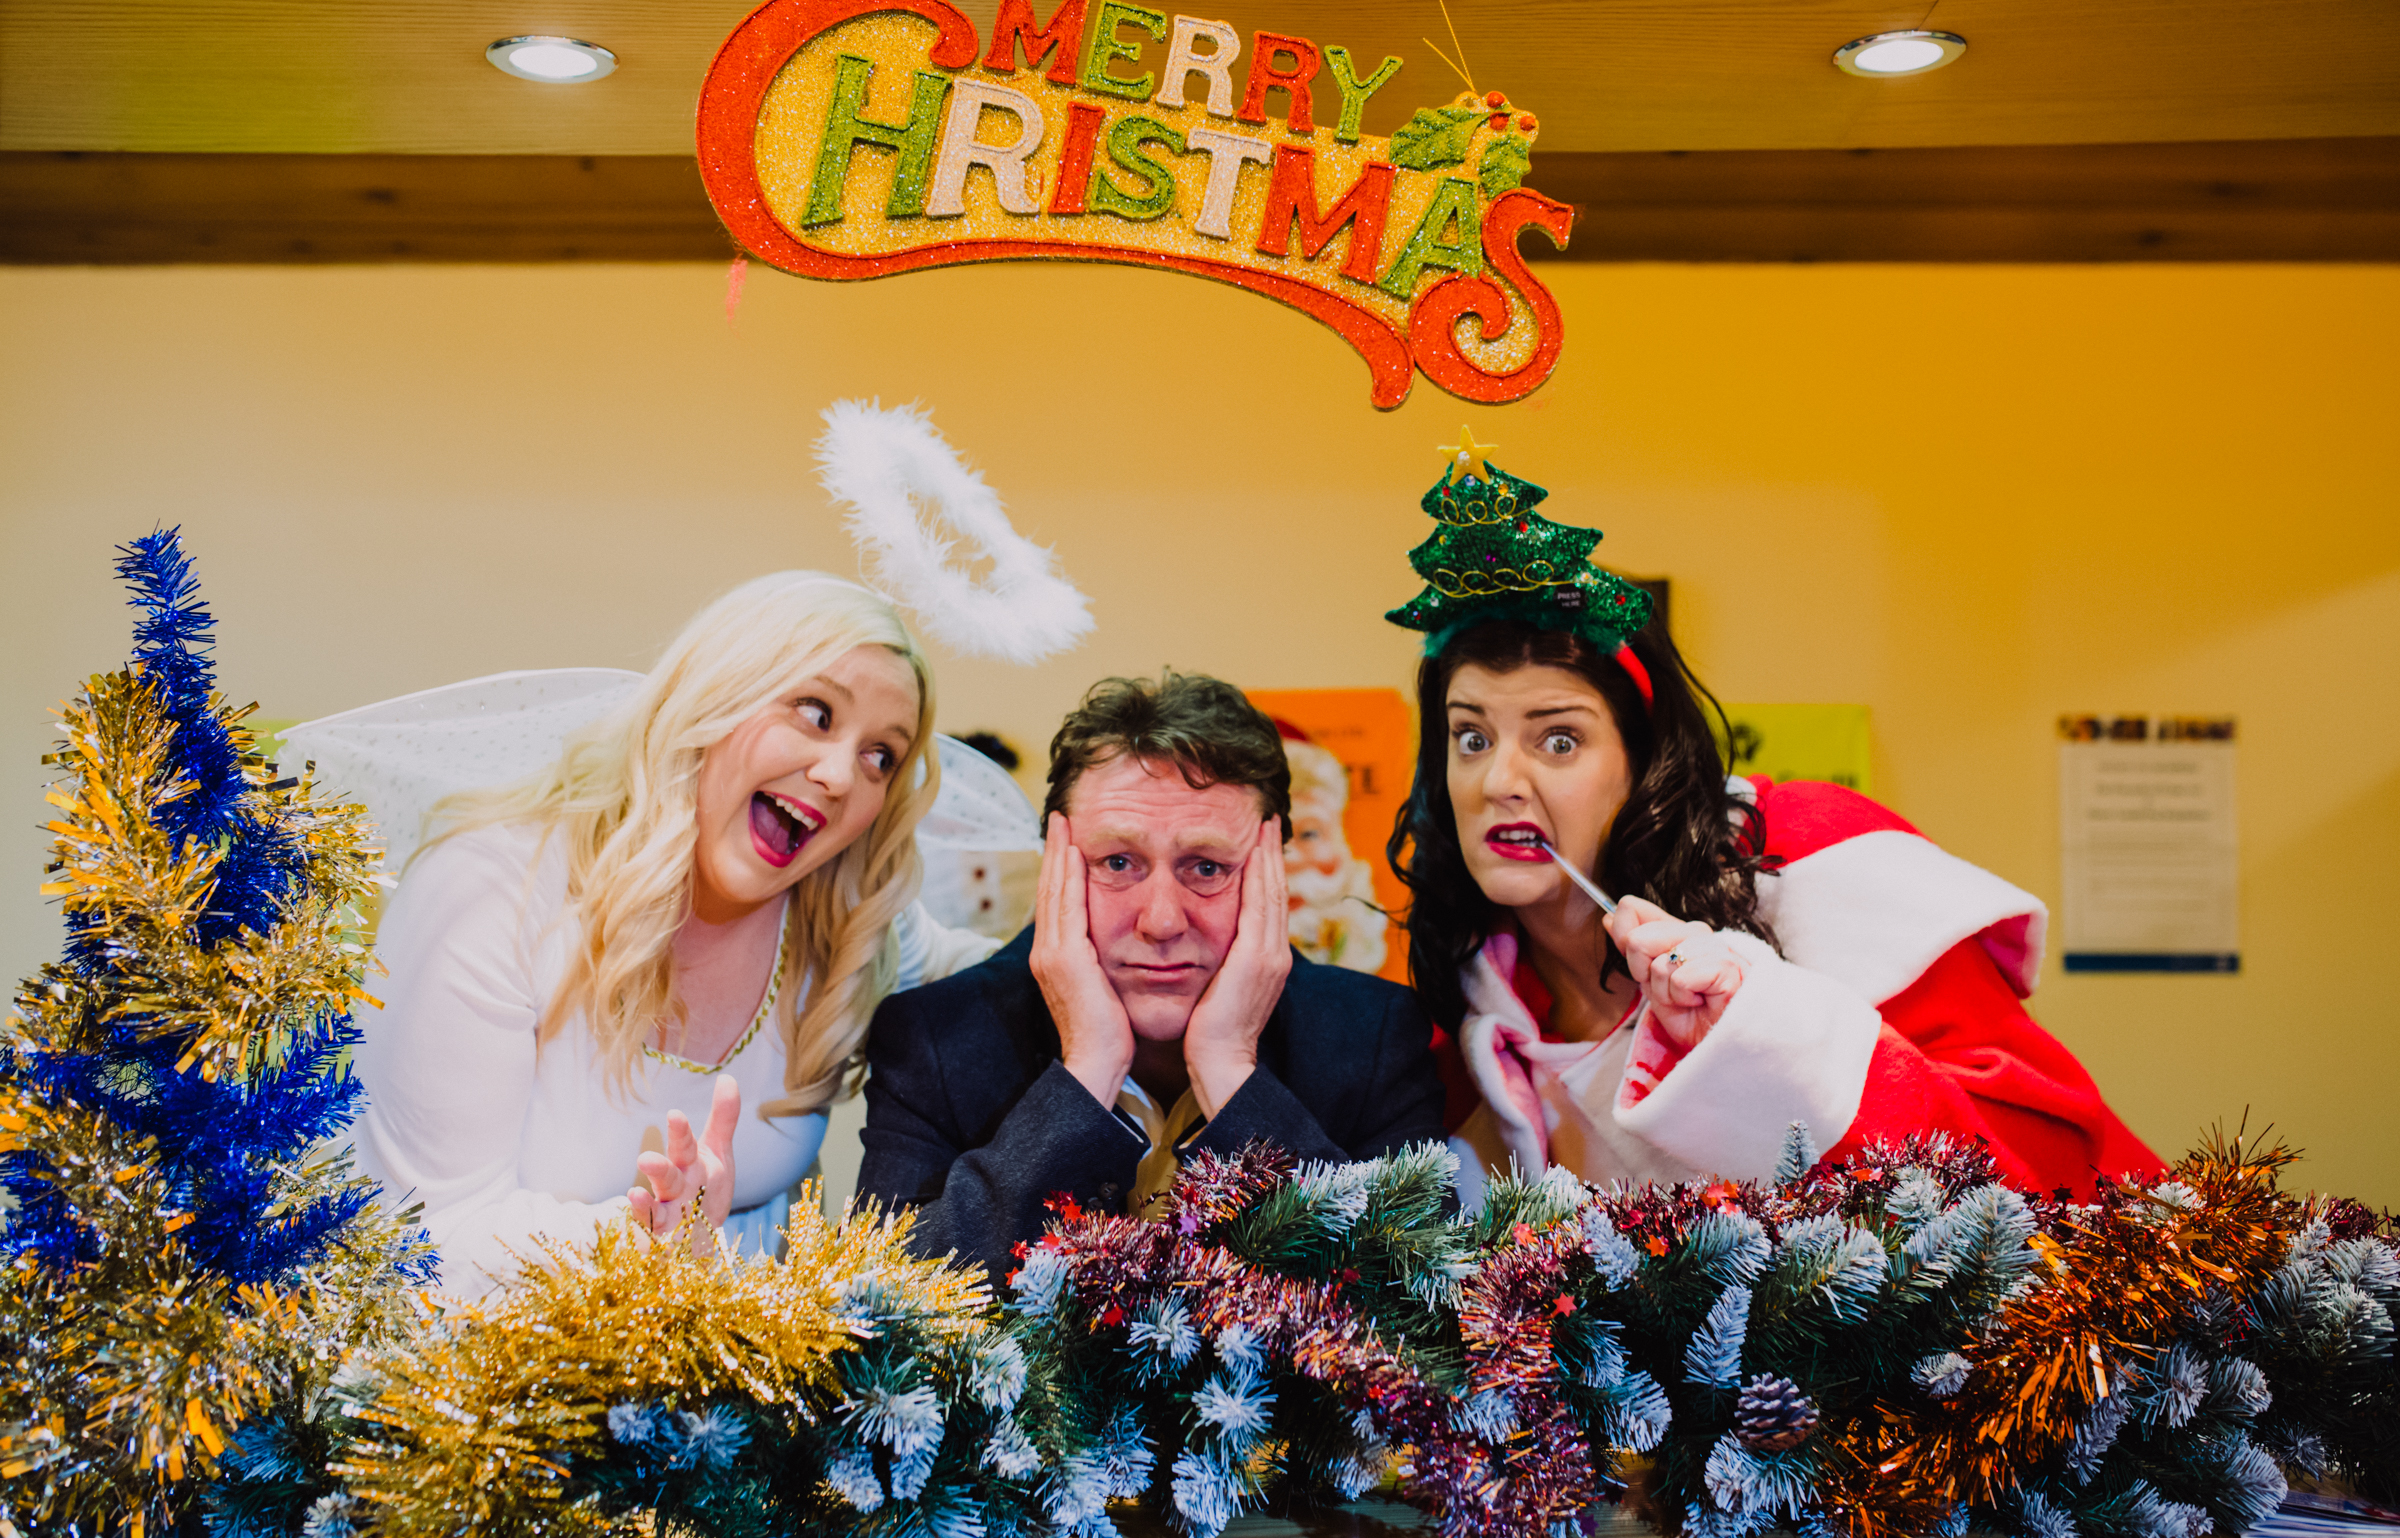 Comedy duo celebrate 'Wonderful Wee Christmas' at the Mill